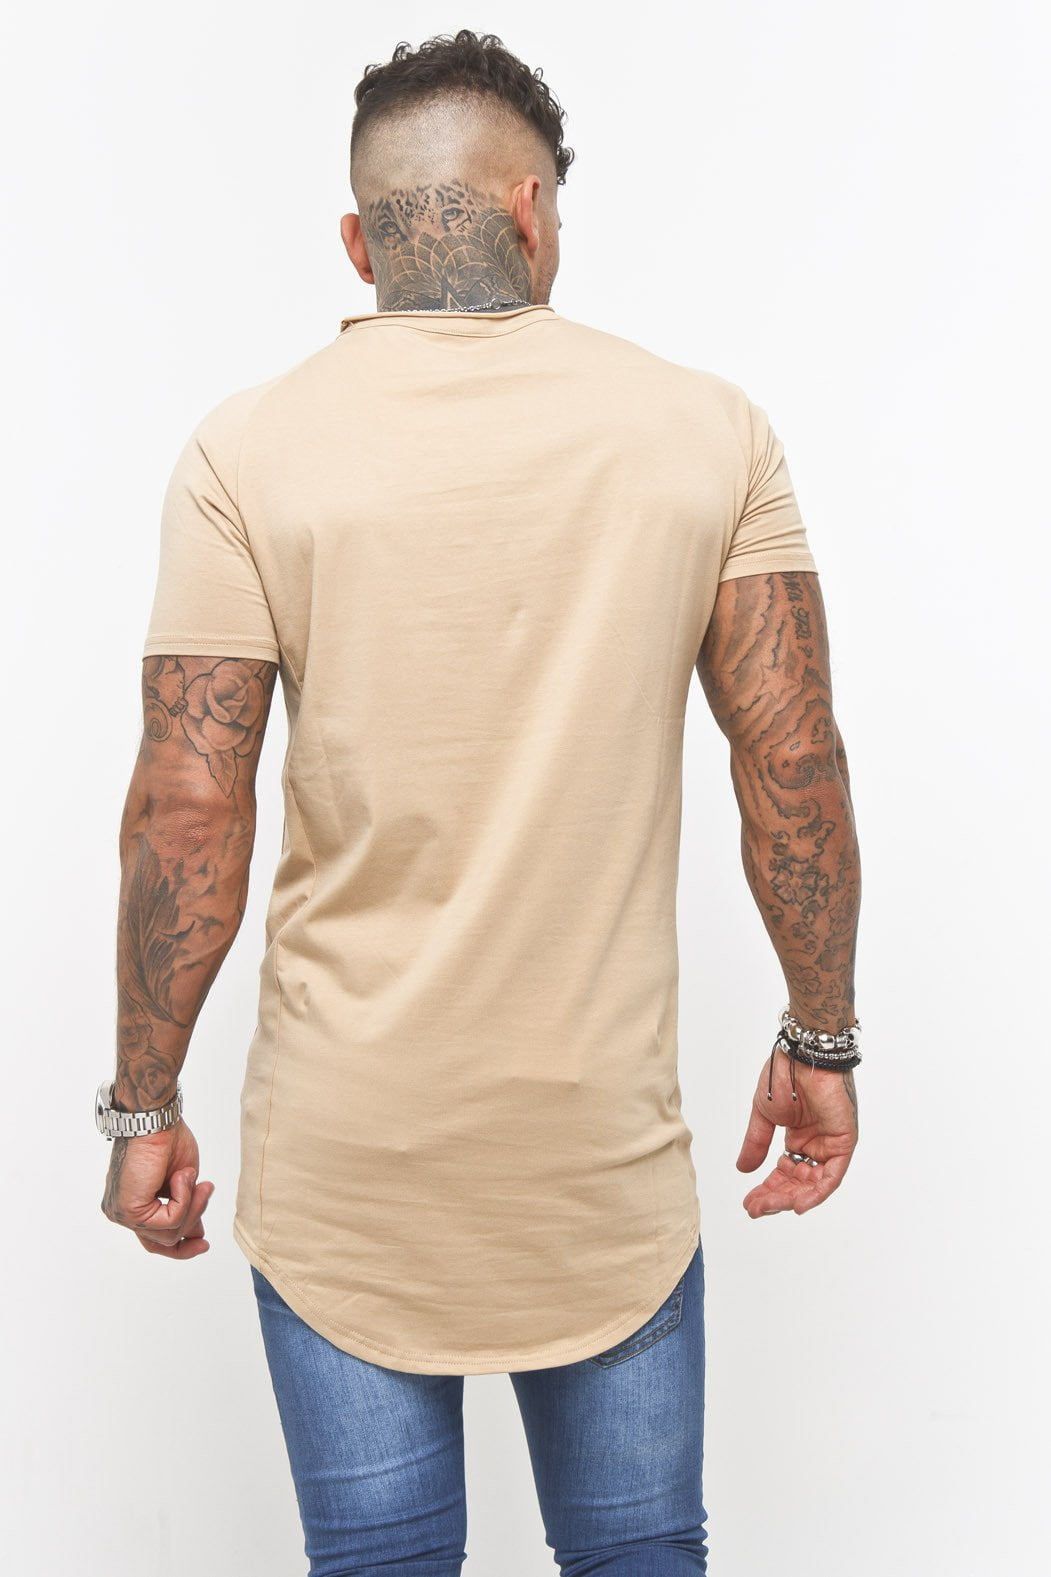 Liquor n Poker - Muscle fit t shirt in Beige - Liquor N Poker  Liquor N Poker